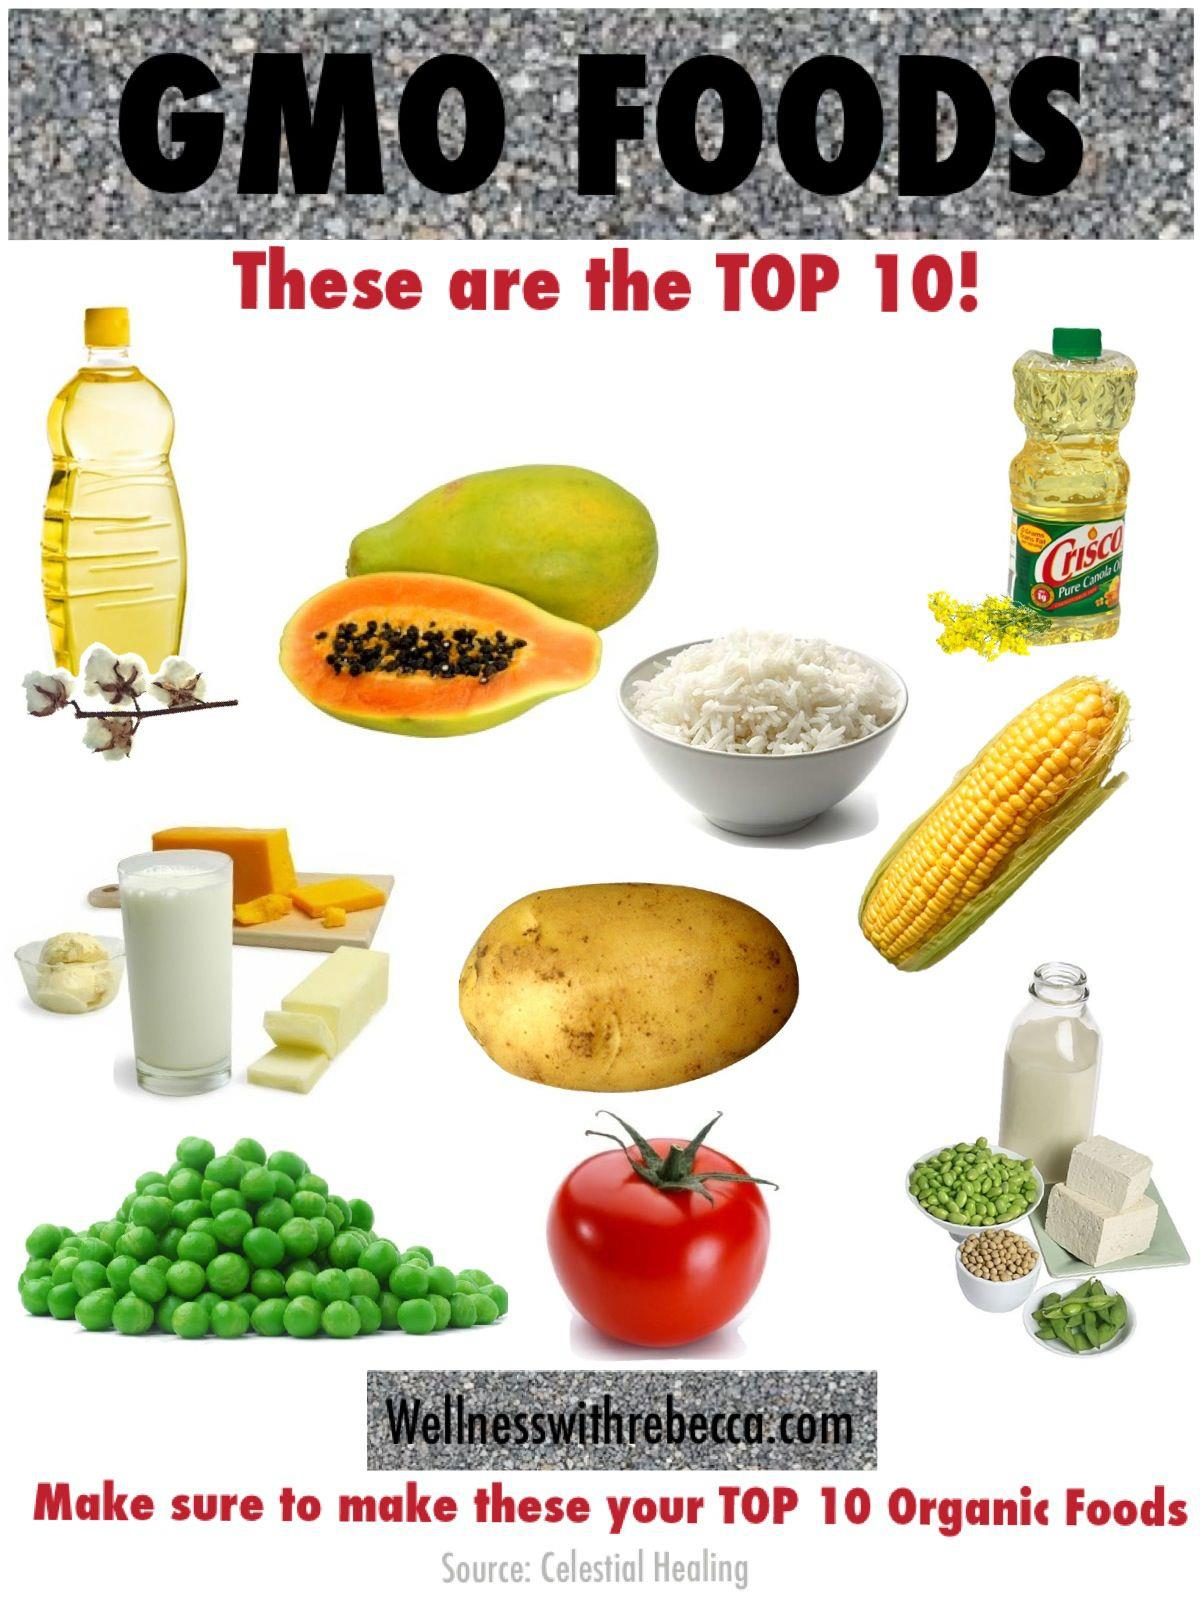 Top 10 Genetically Modified Organisms